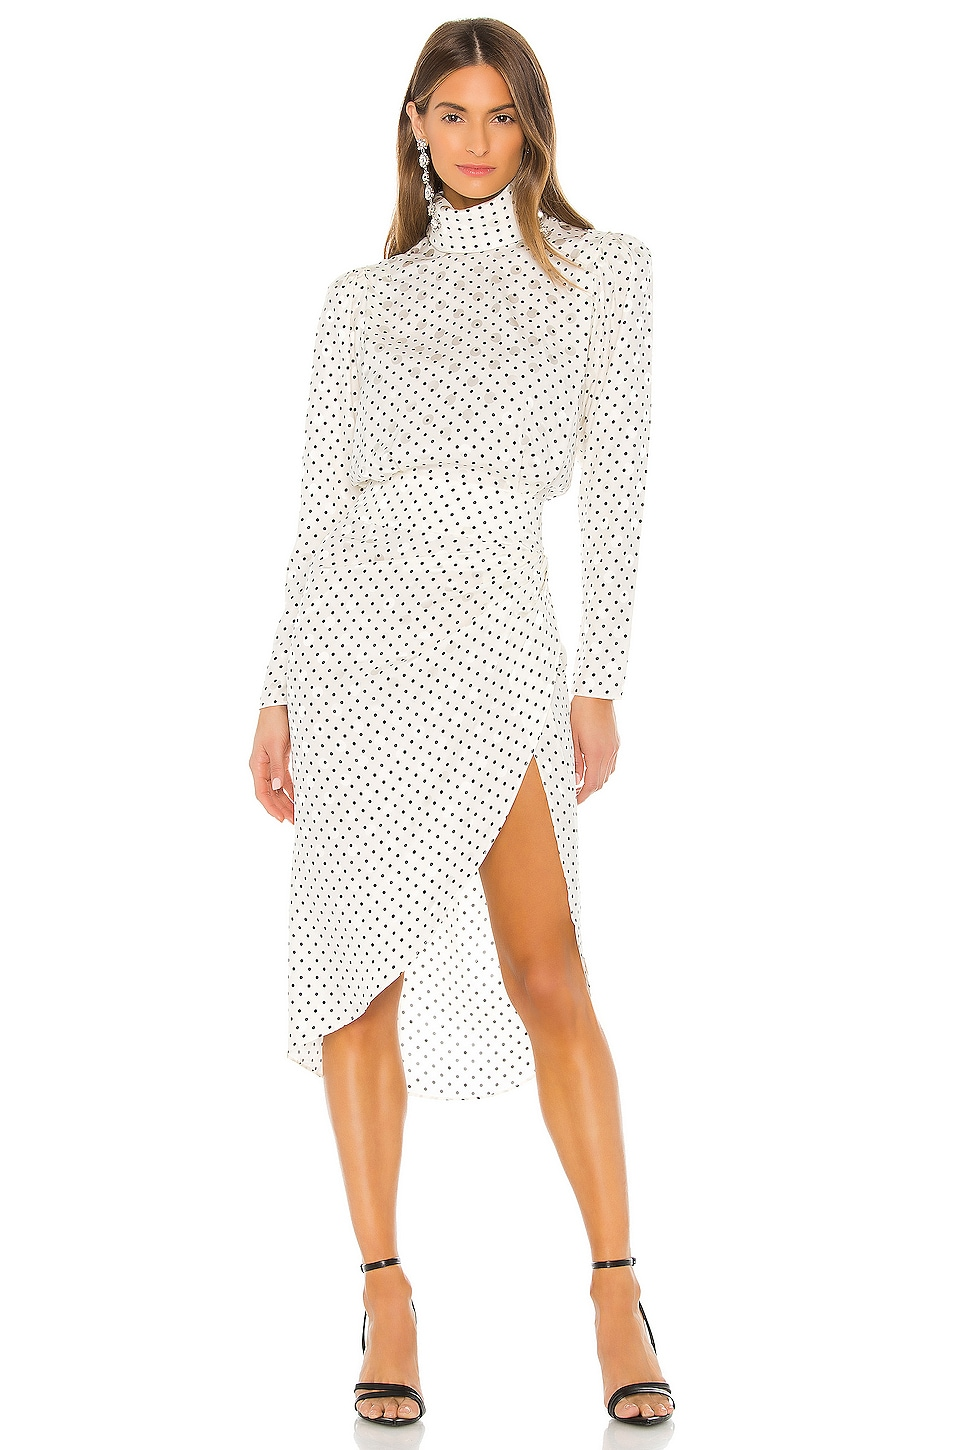 Ronny Kobo Kiara Dress in White